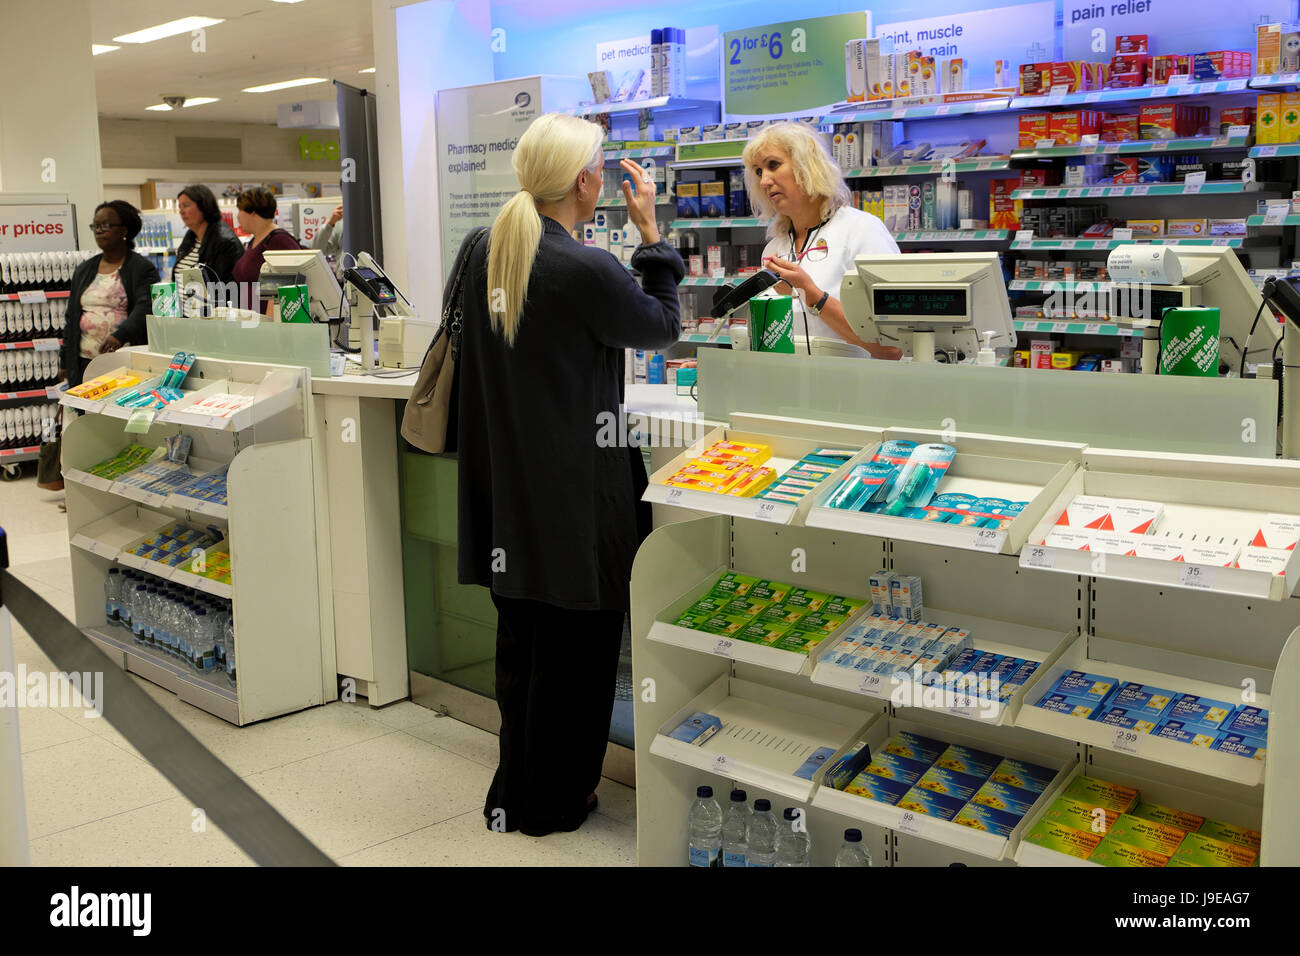 A woman customer talking to a shop assistant at the checkout counter of a Boots the Chemist pharmacy drugs store - Stock Image